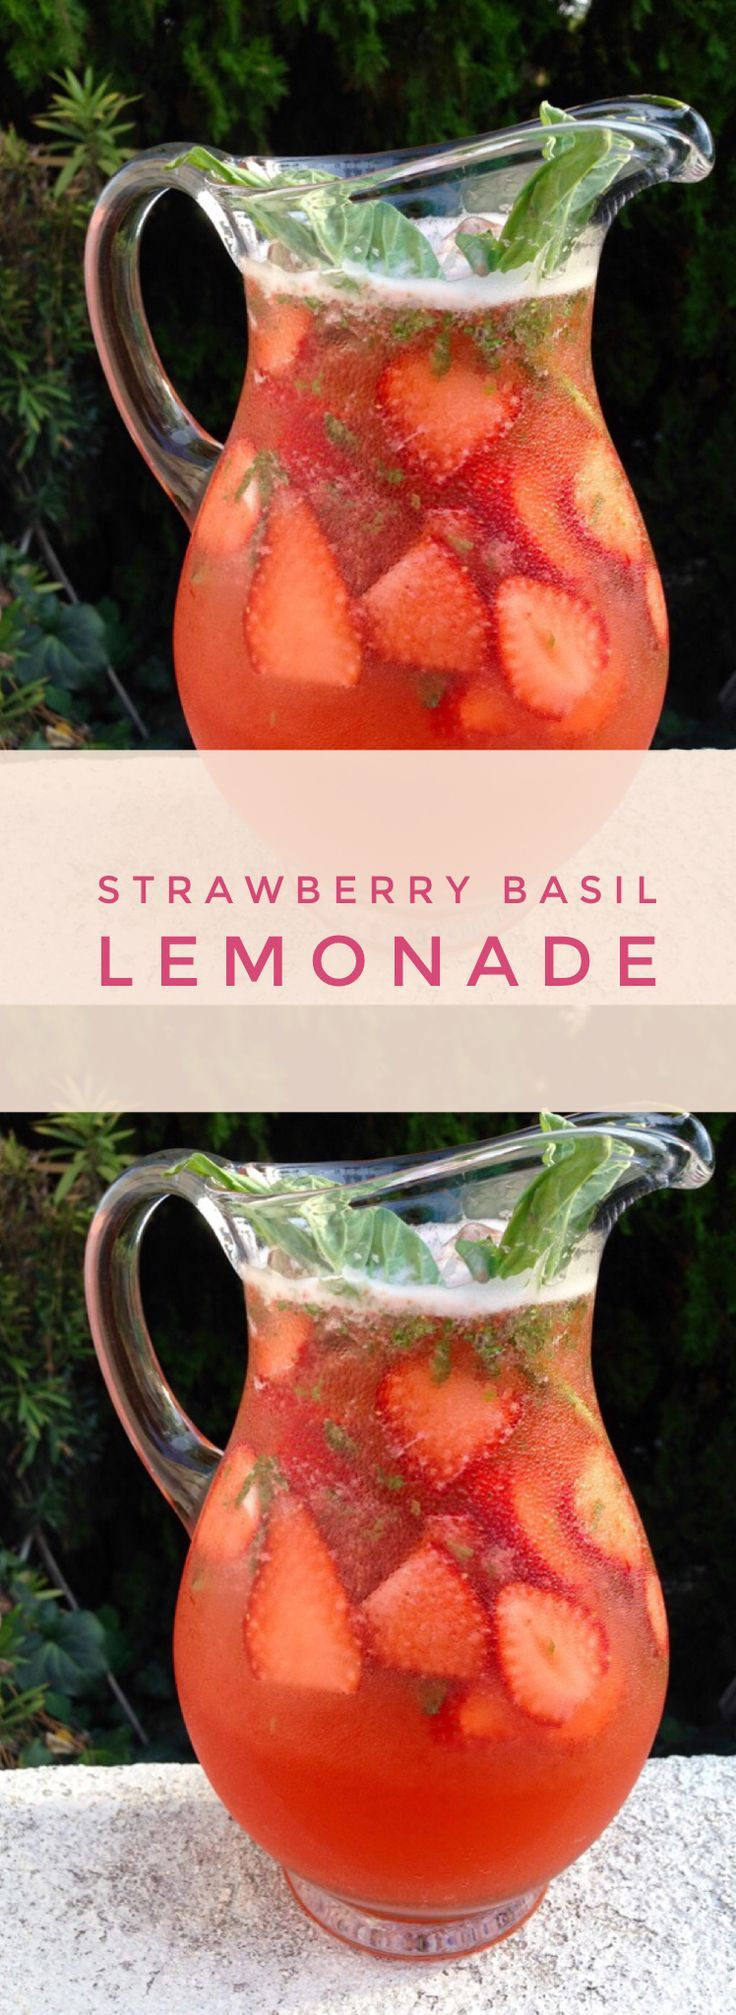 Strawberry Basil Lemonade | CiaoFlorentina.com @CiaoFlorentina